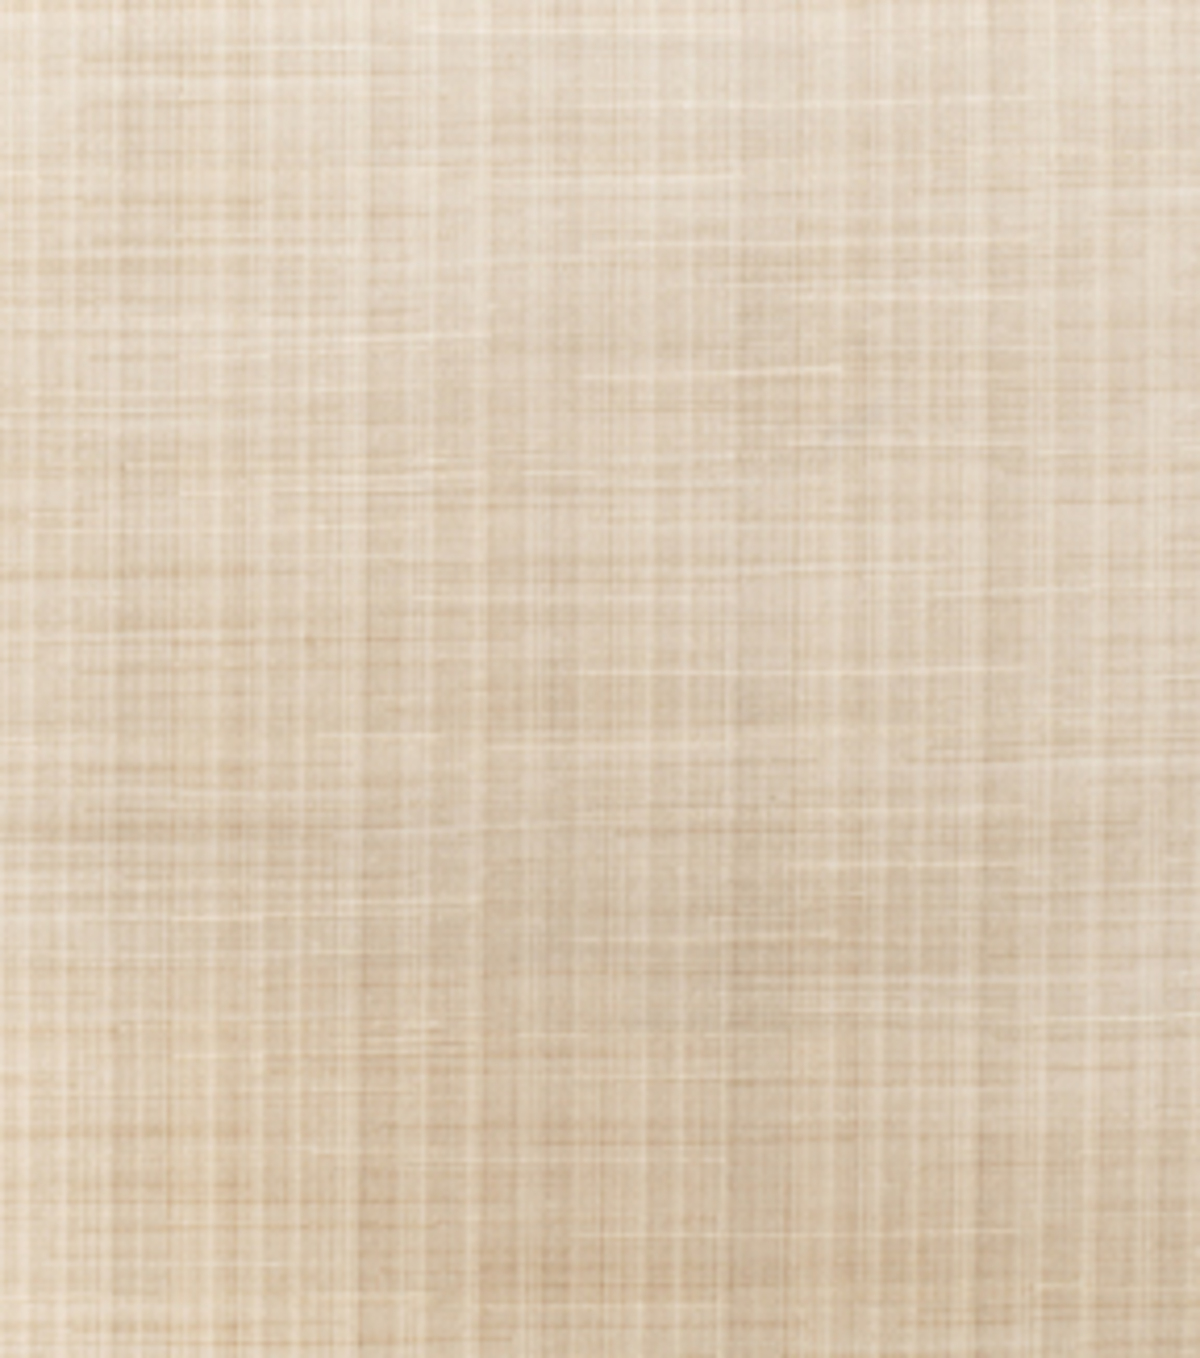 Home Decor 8\u0022x8\u0022 Fabric Swatch-Eaton Square Cargo /  Linen